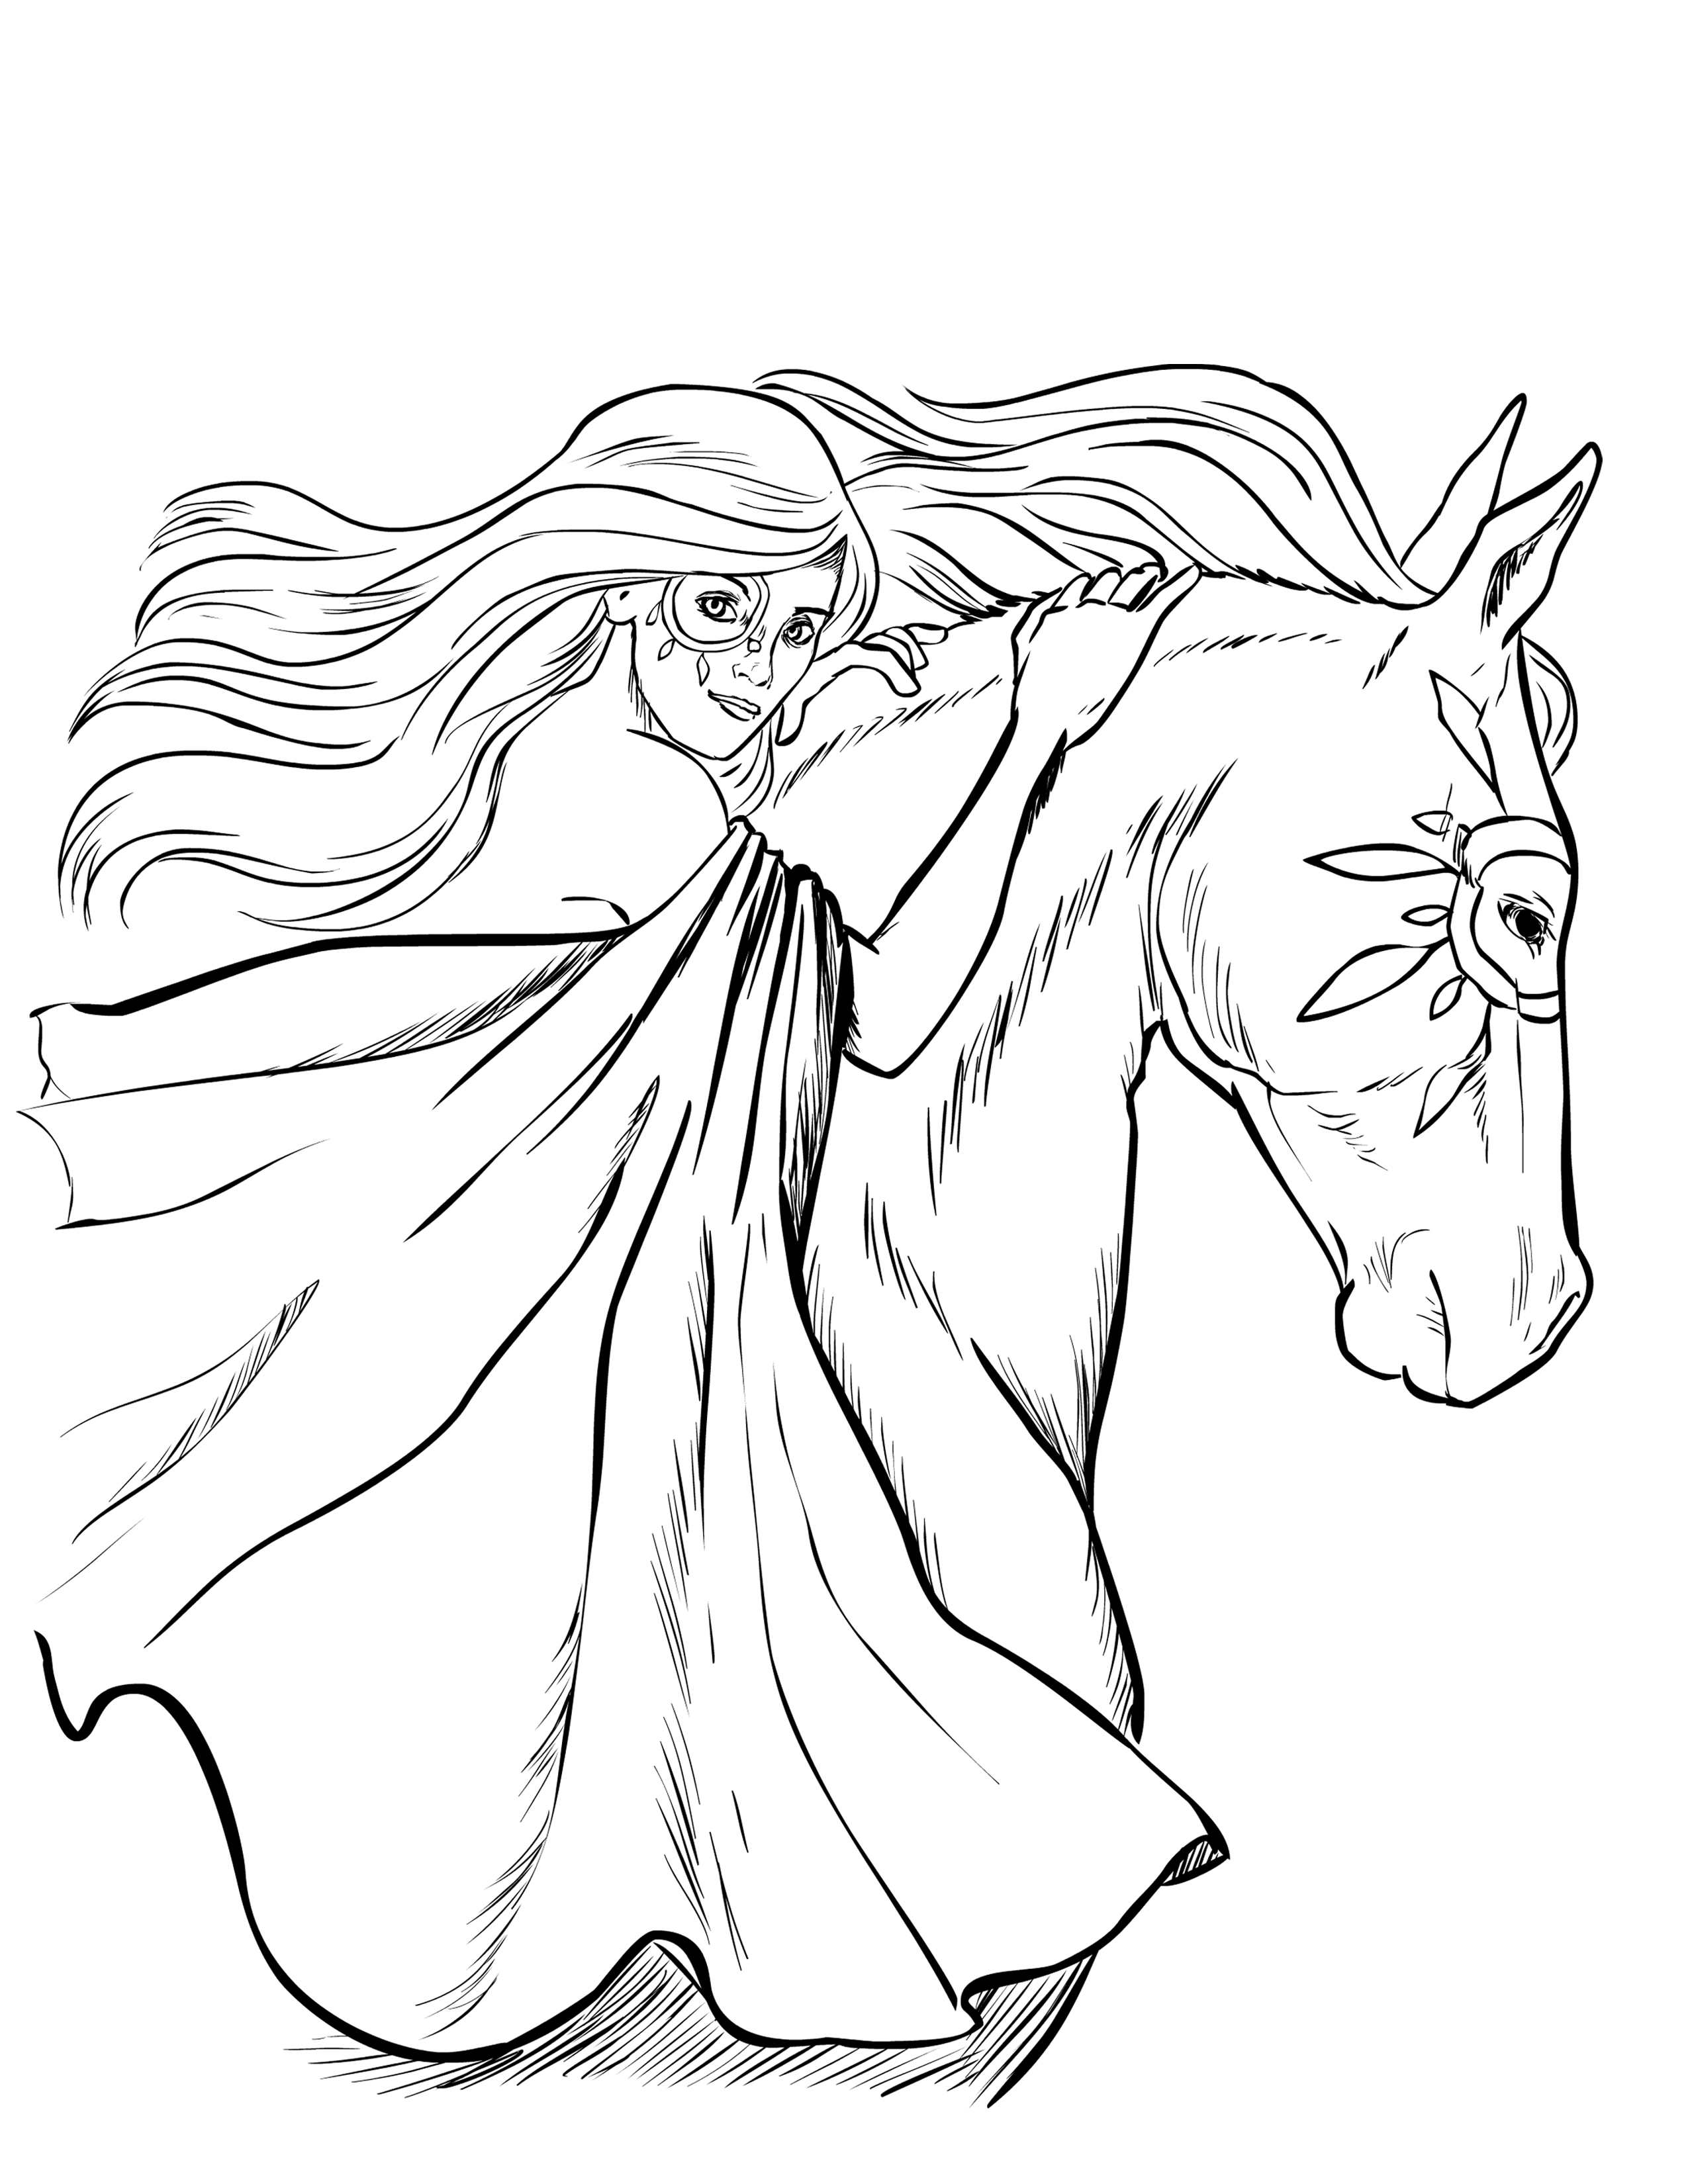 2550x3300 Homely Design Horse Coloring Pages For Adults Detailed Designed